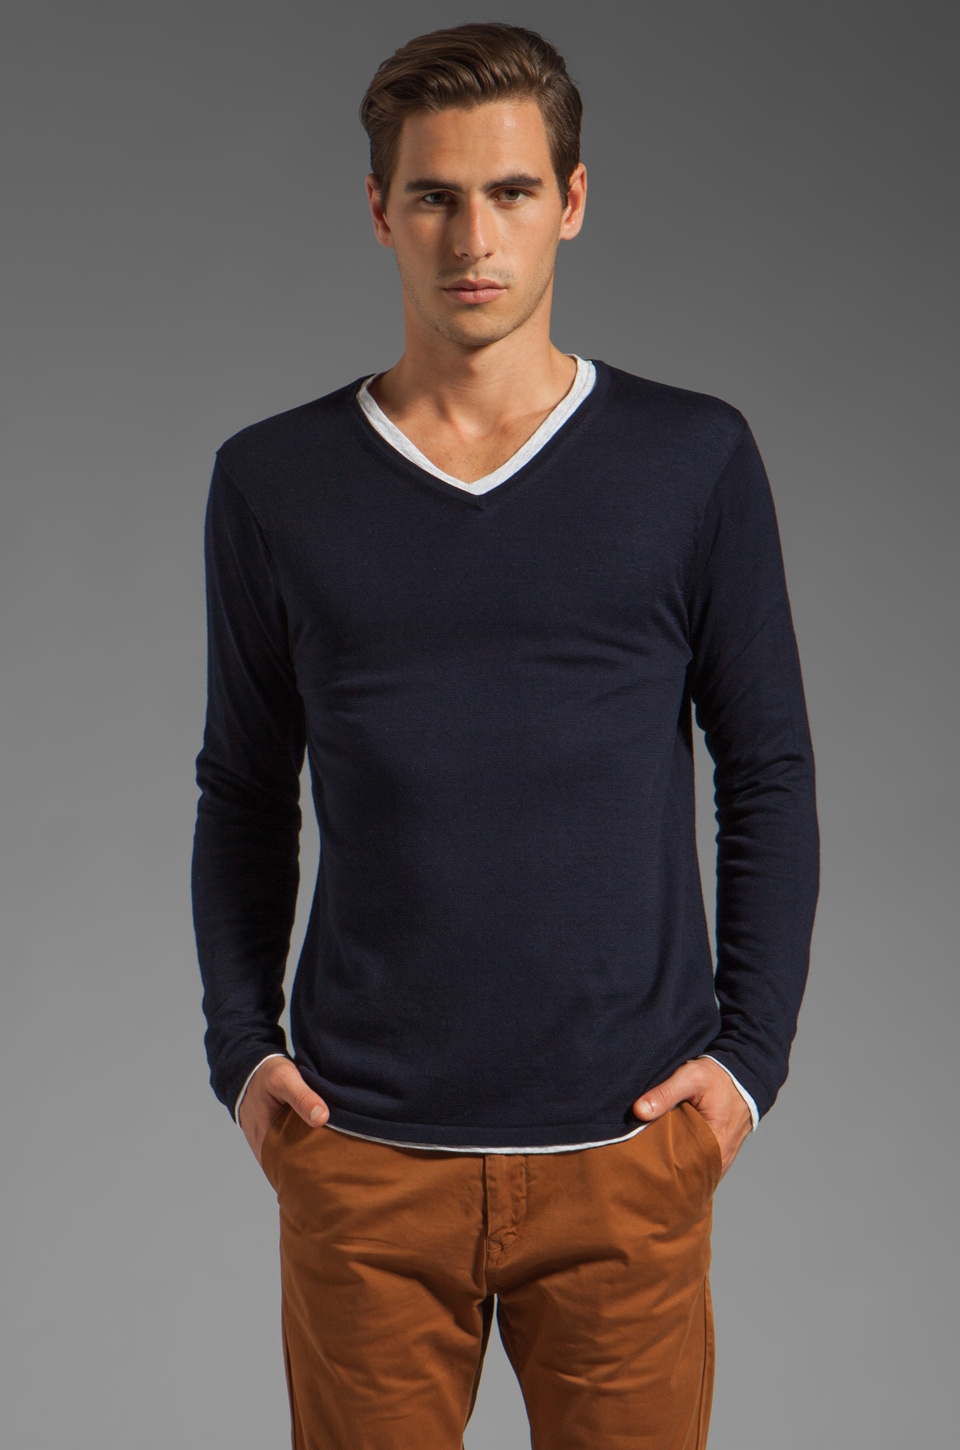 Scotch & Soda 2N1 V Neck Knit Top in Navy